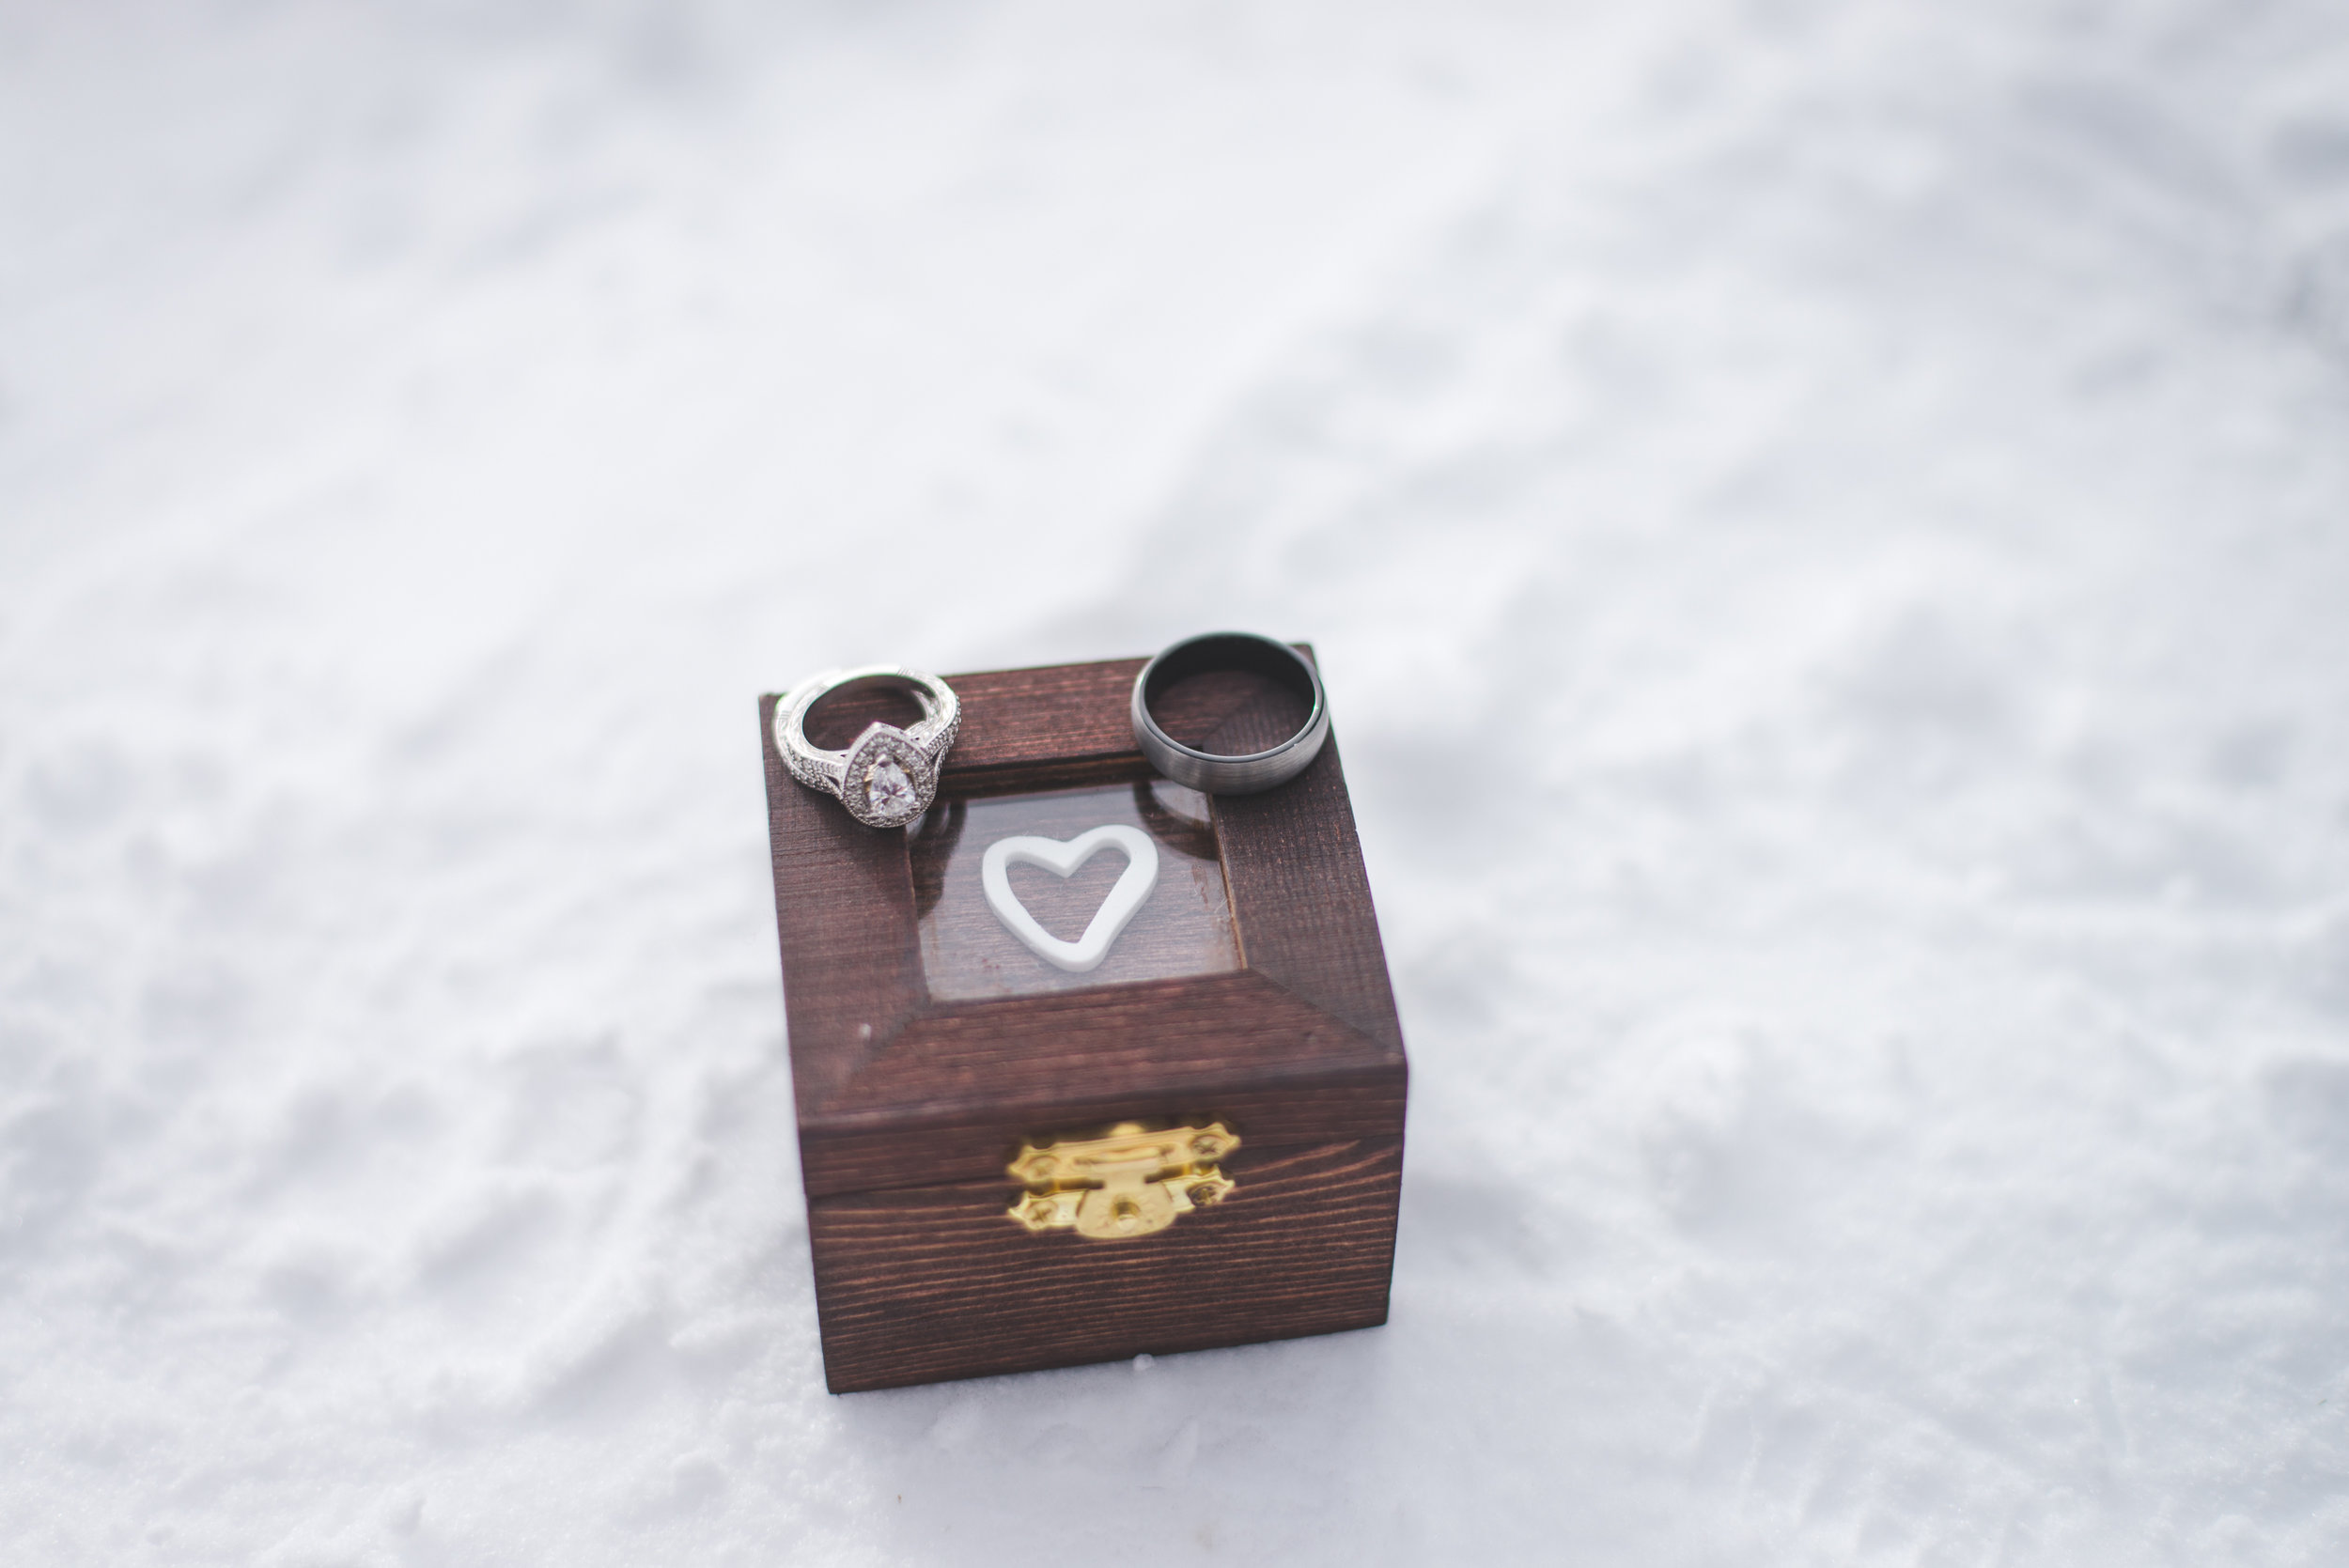 The bride was given a custom-made wood box for their wedding rings - a sweet detail in this Colorado destination elopement